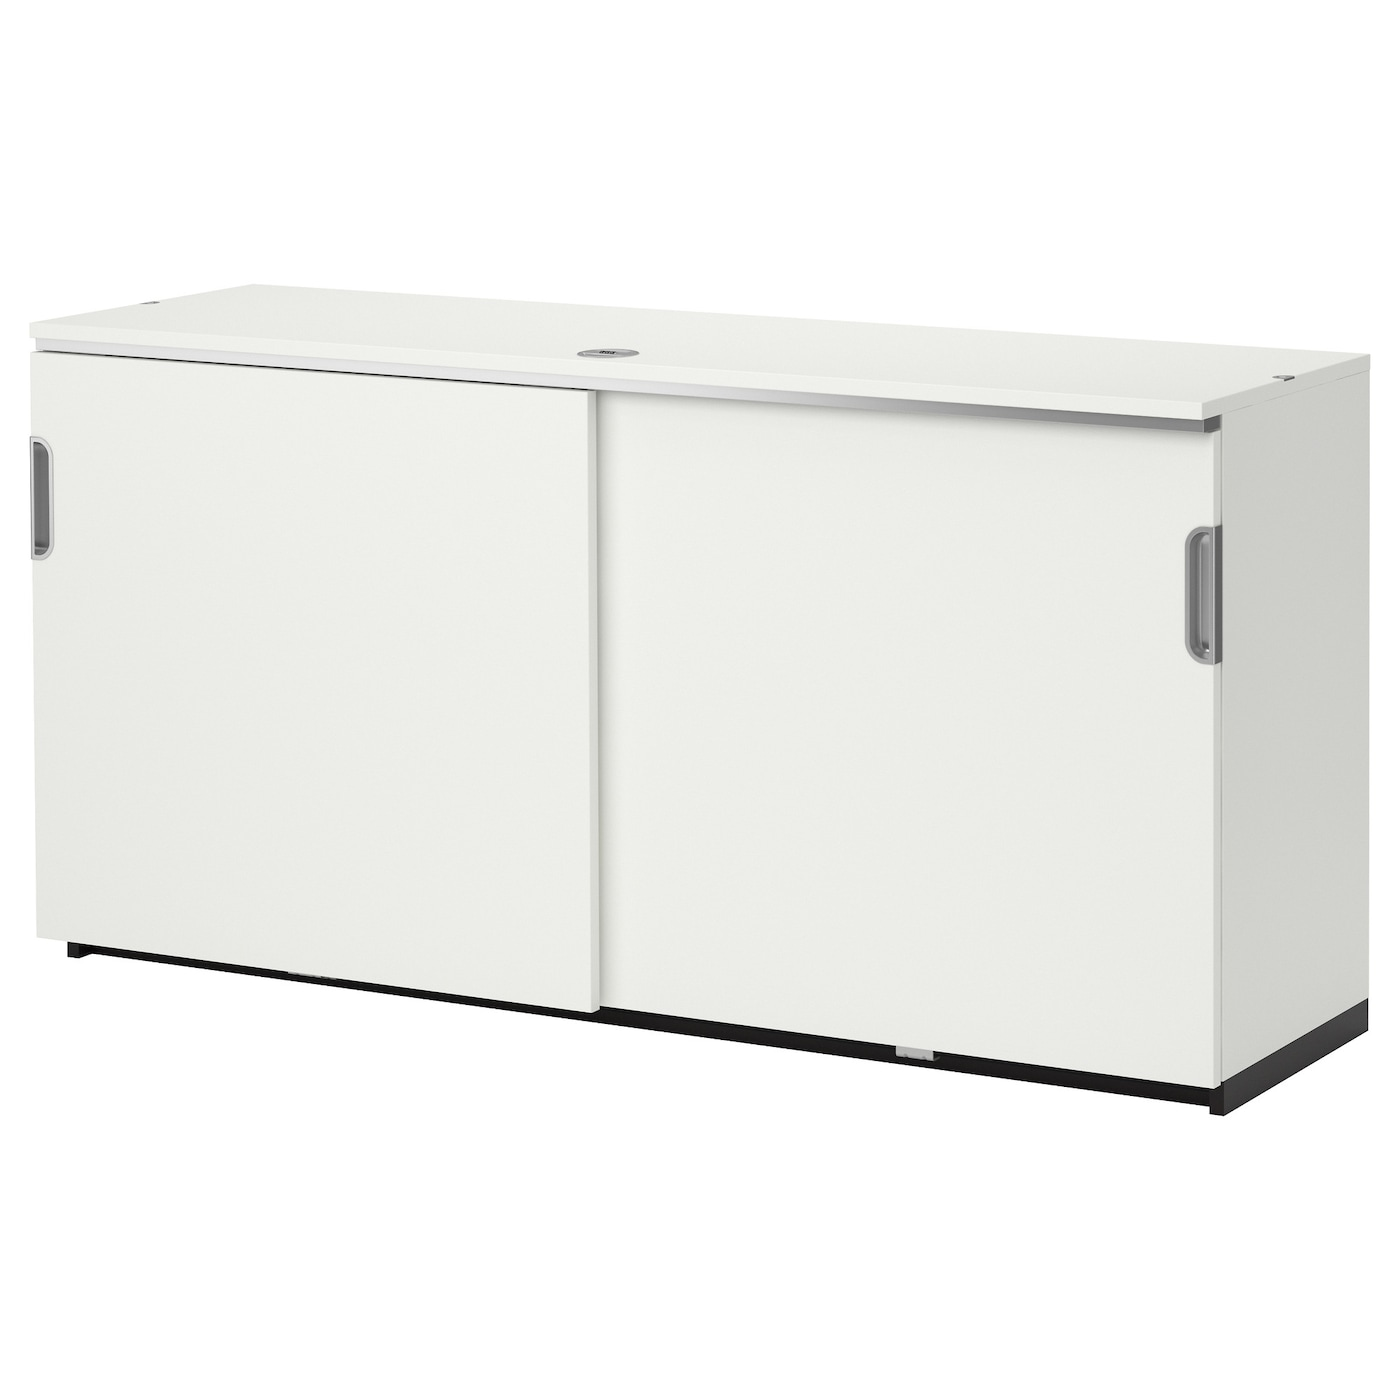 Sell Kitchen Cabinets Galant Cabinet With Sliding Doors White 160x80 Cm Ikea